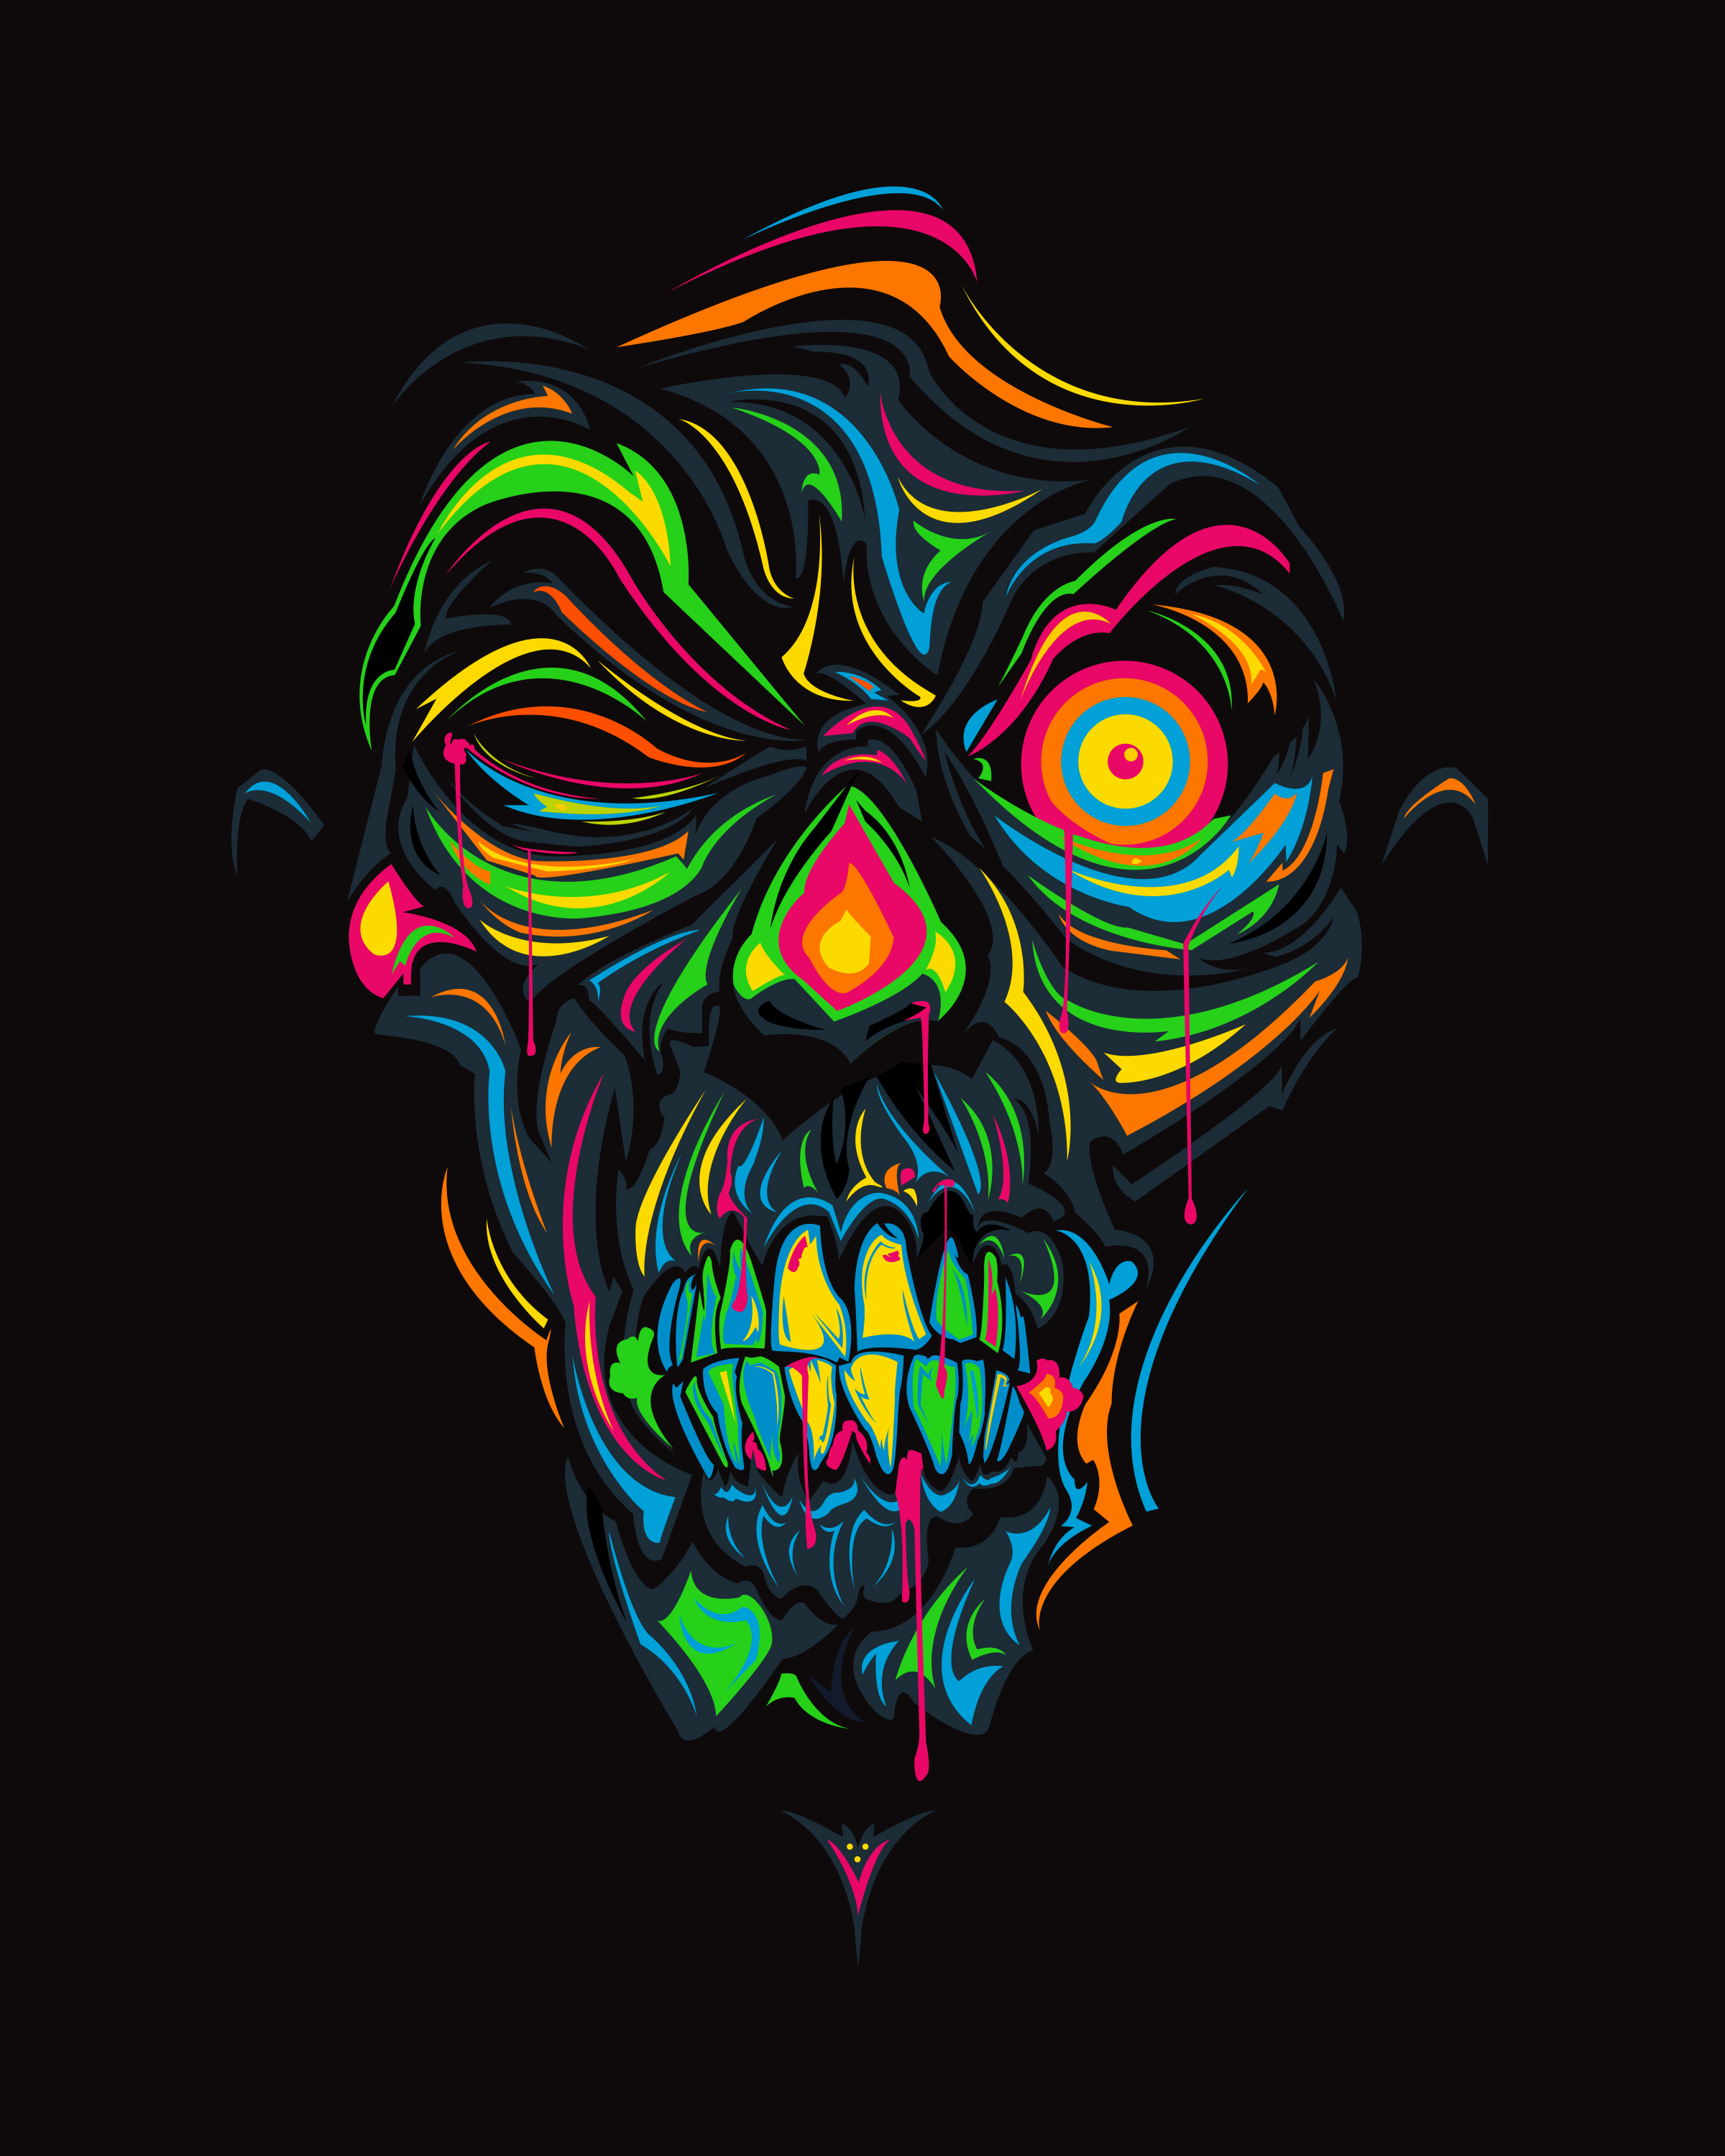 Onnit Zombie